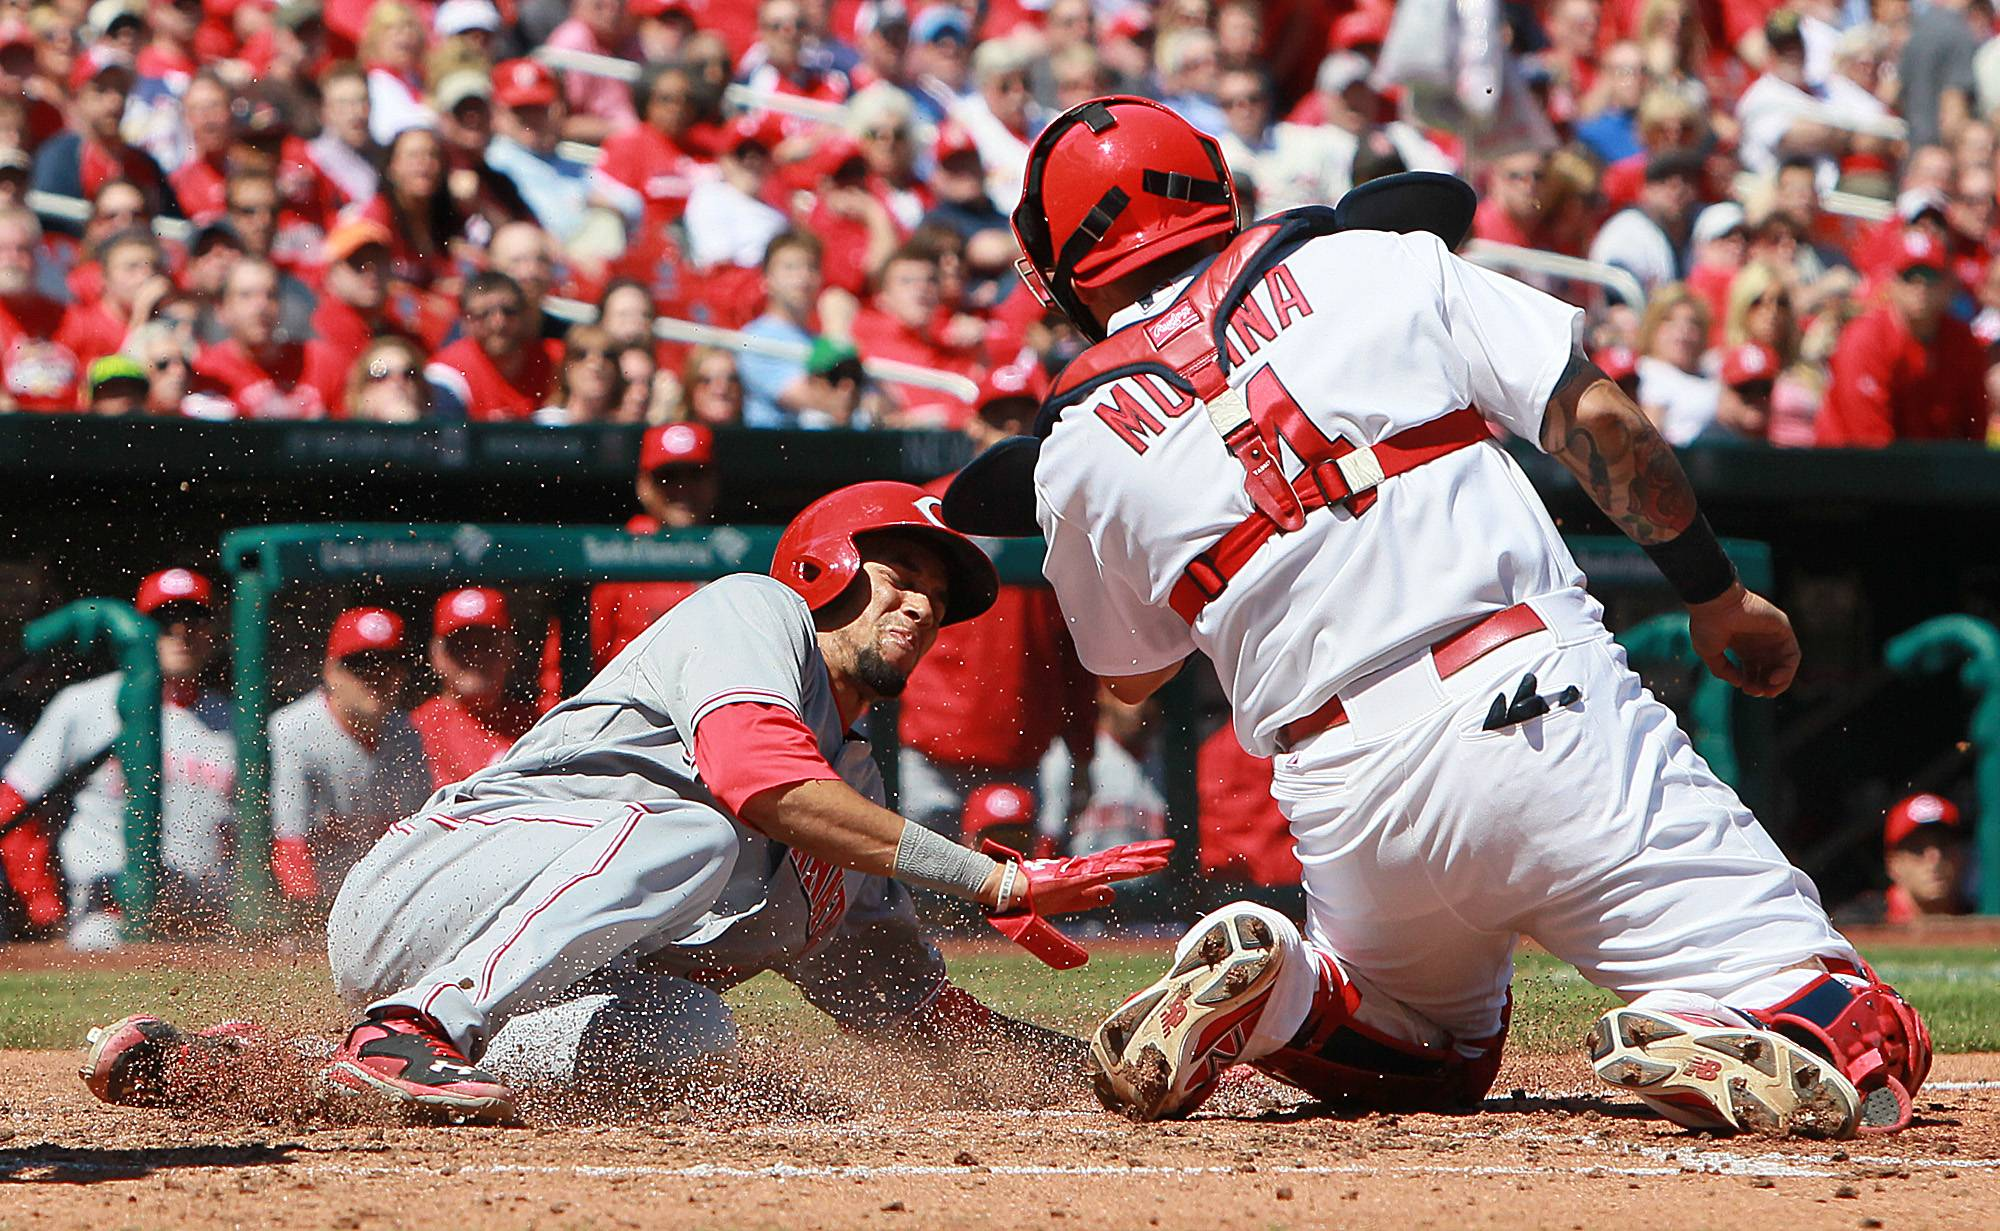 The speed of the Cincinnati Reds' Billy Hamilton has Matt Spiegel suggesting it's time for some new metrics to show the true value of Hamilton's base-stealing success.